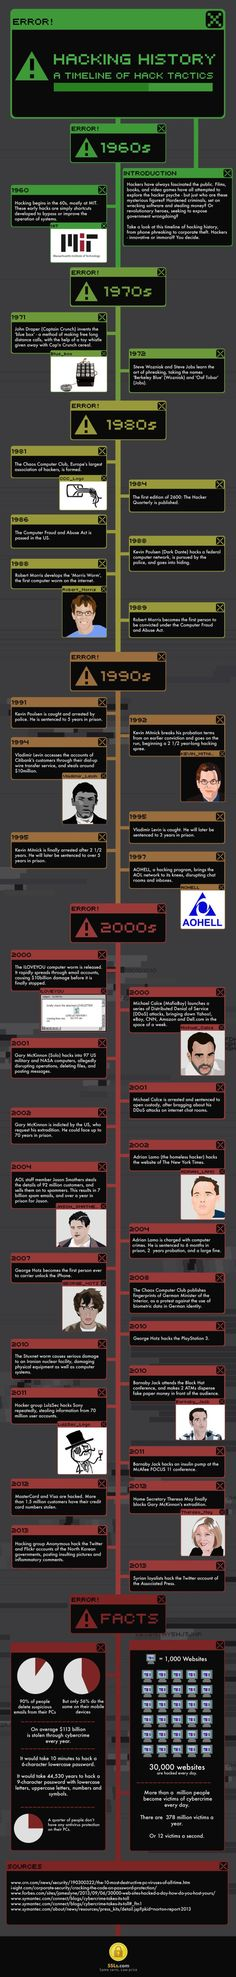 Hacking history #infografia #infographic